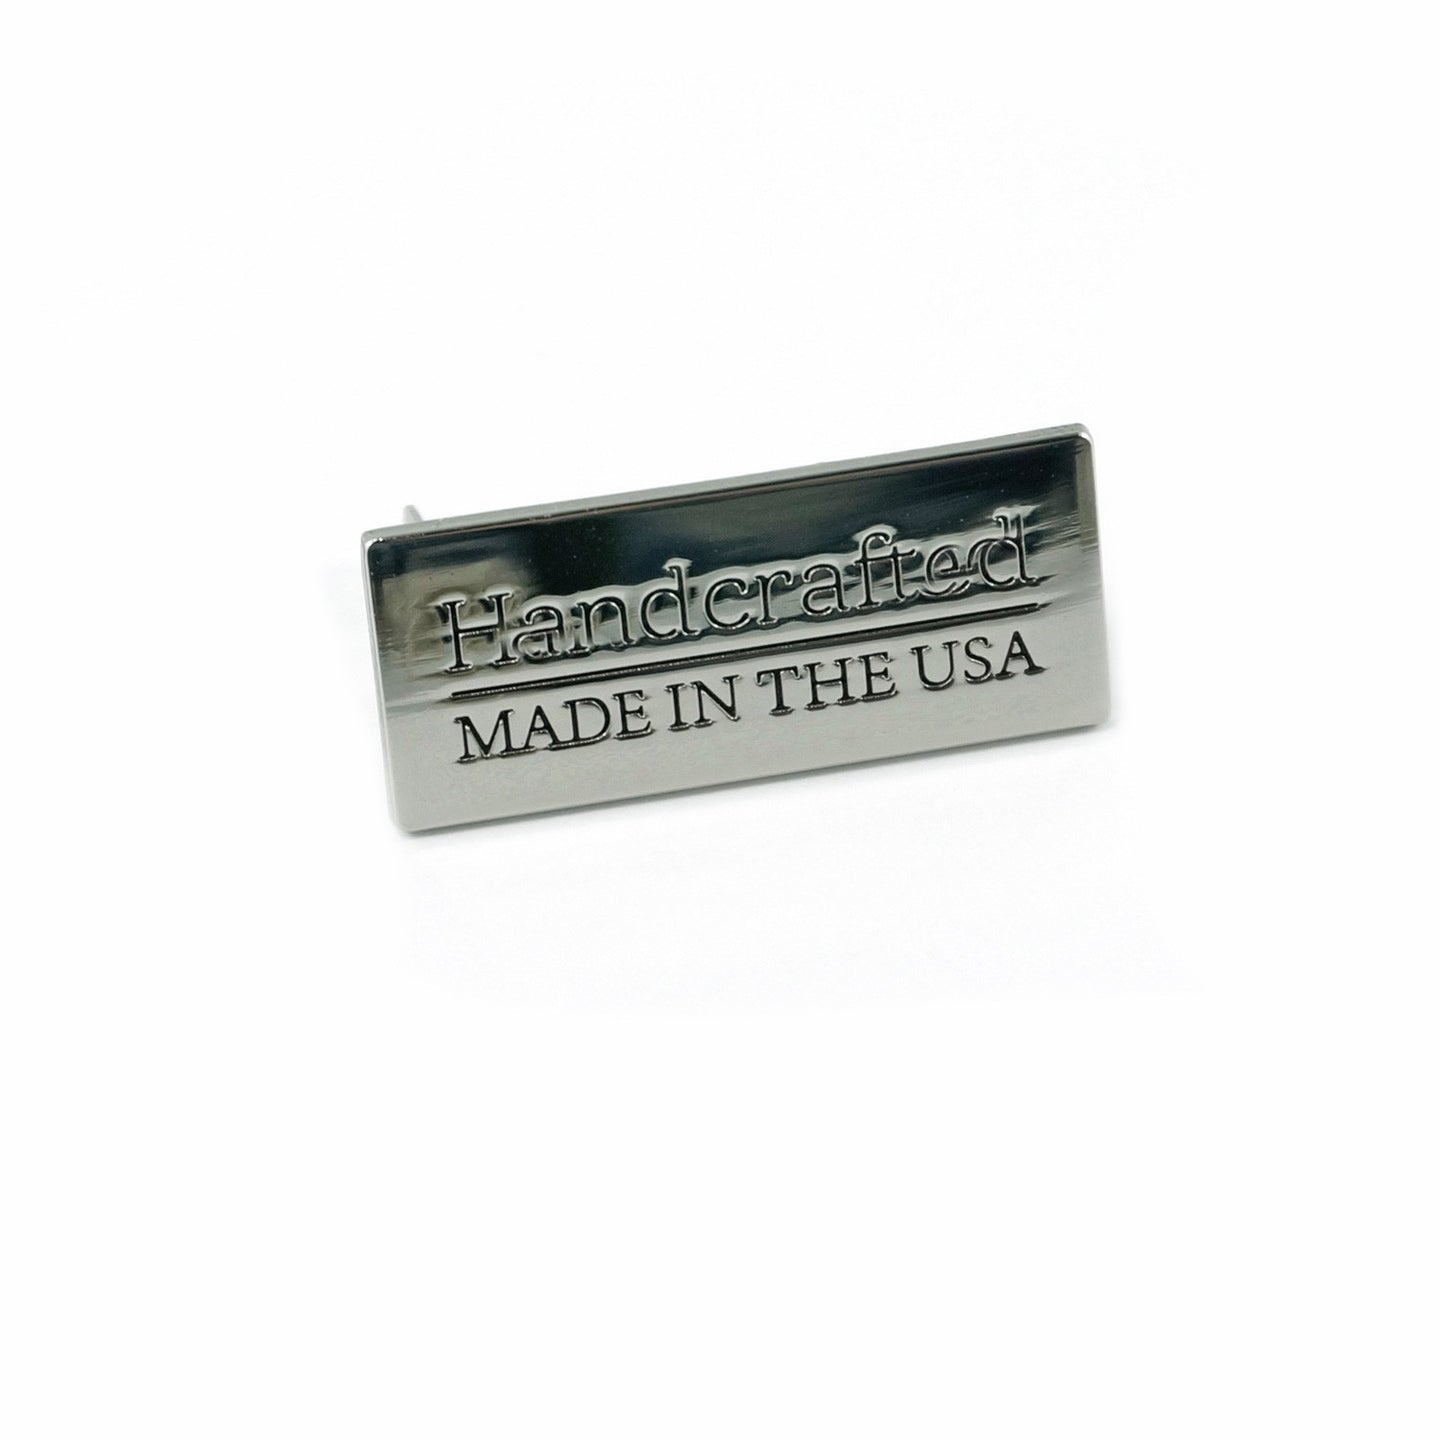 Metal Bag Label - Handcrafted | Made in the USA - Nickel/Silver